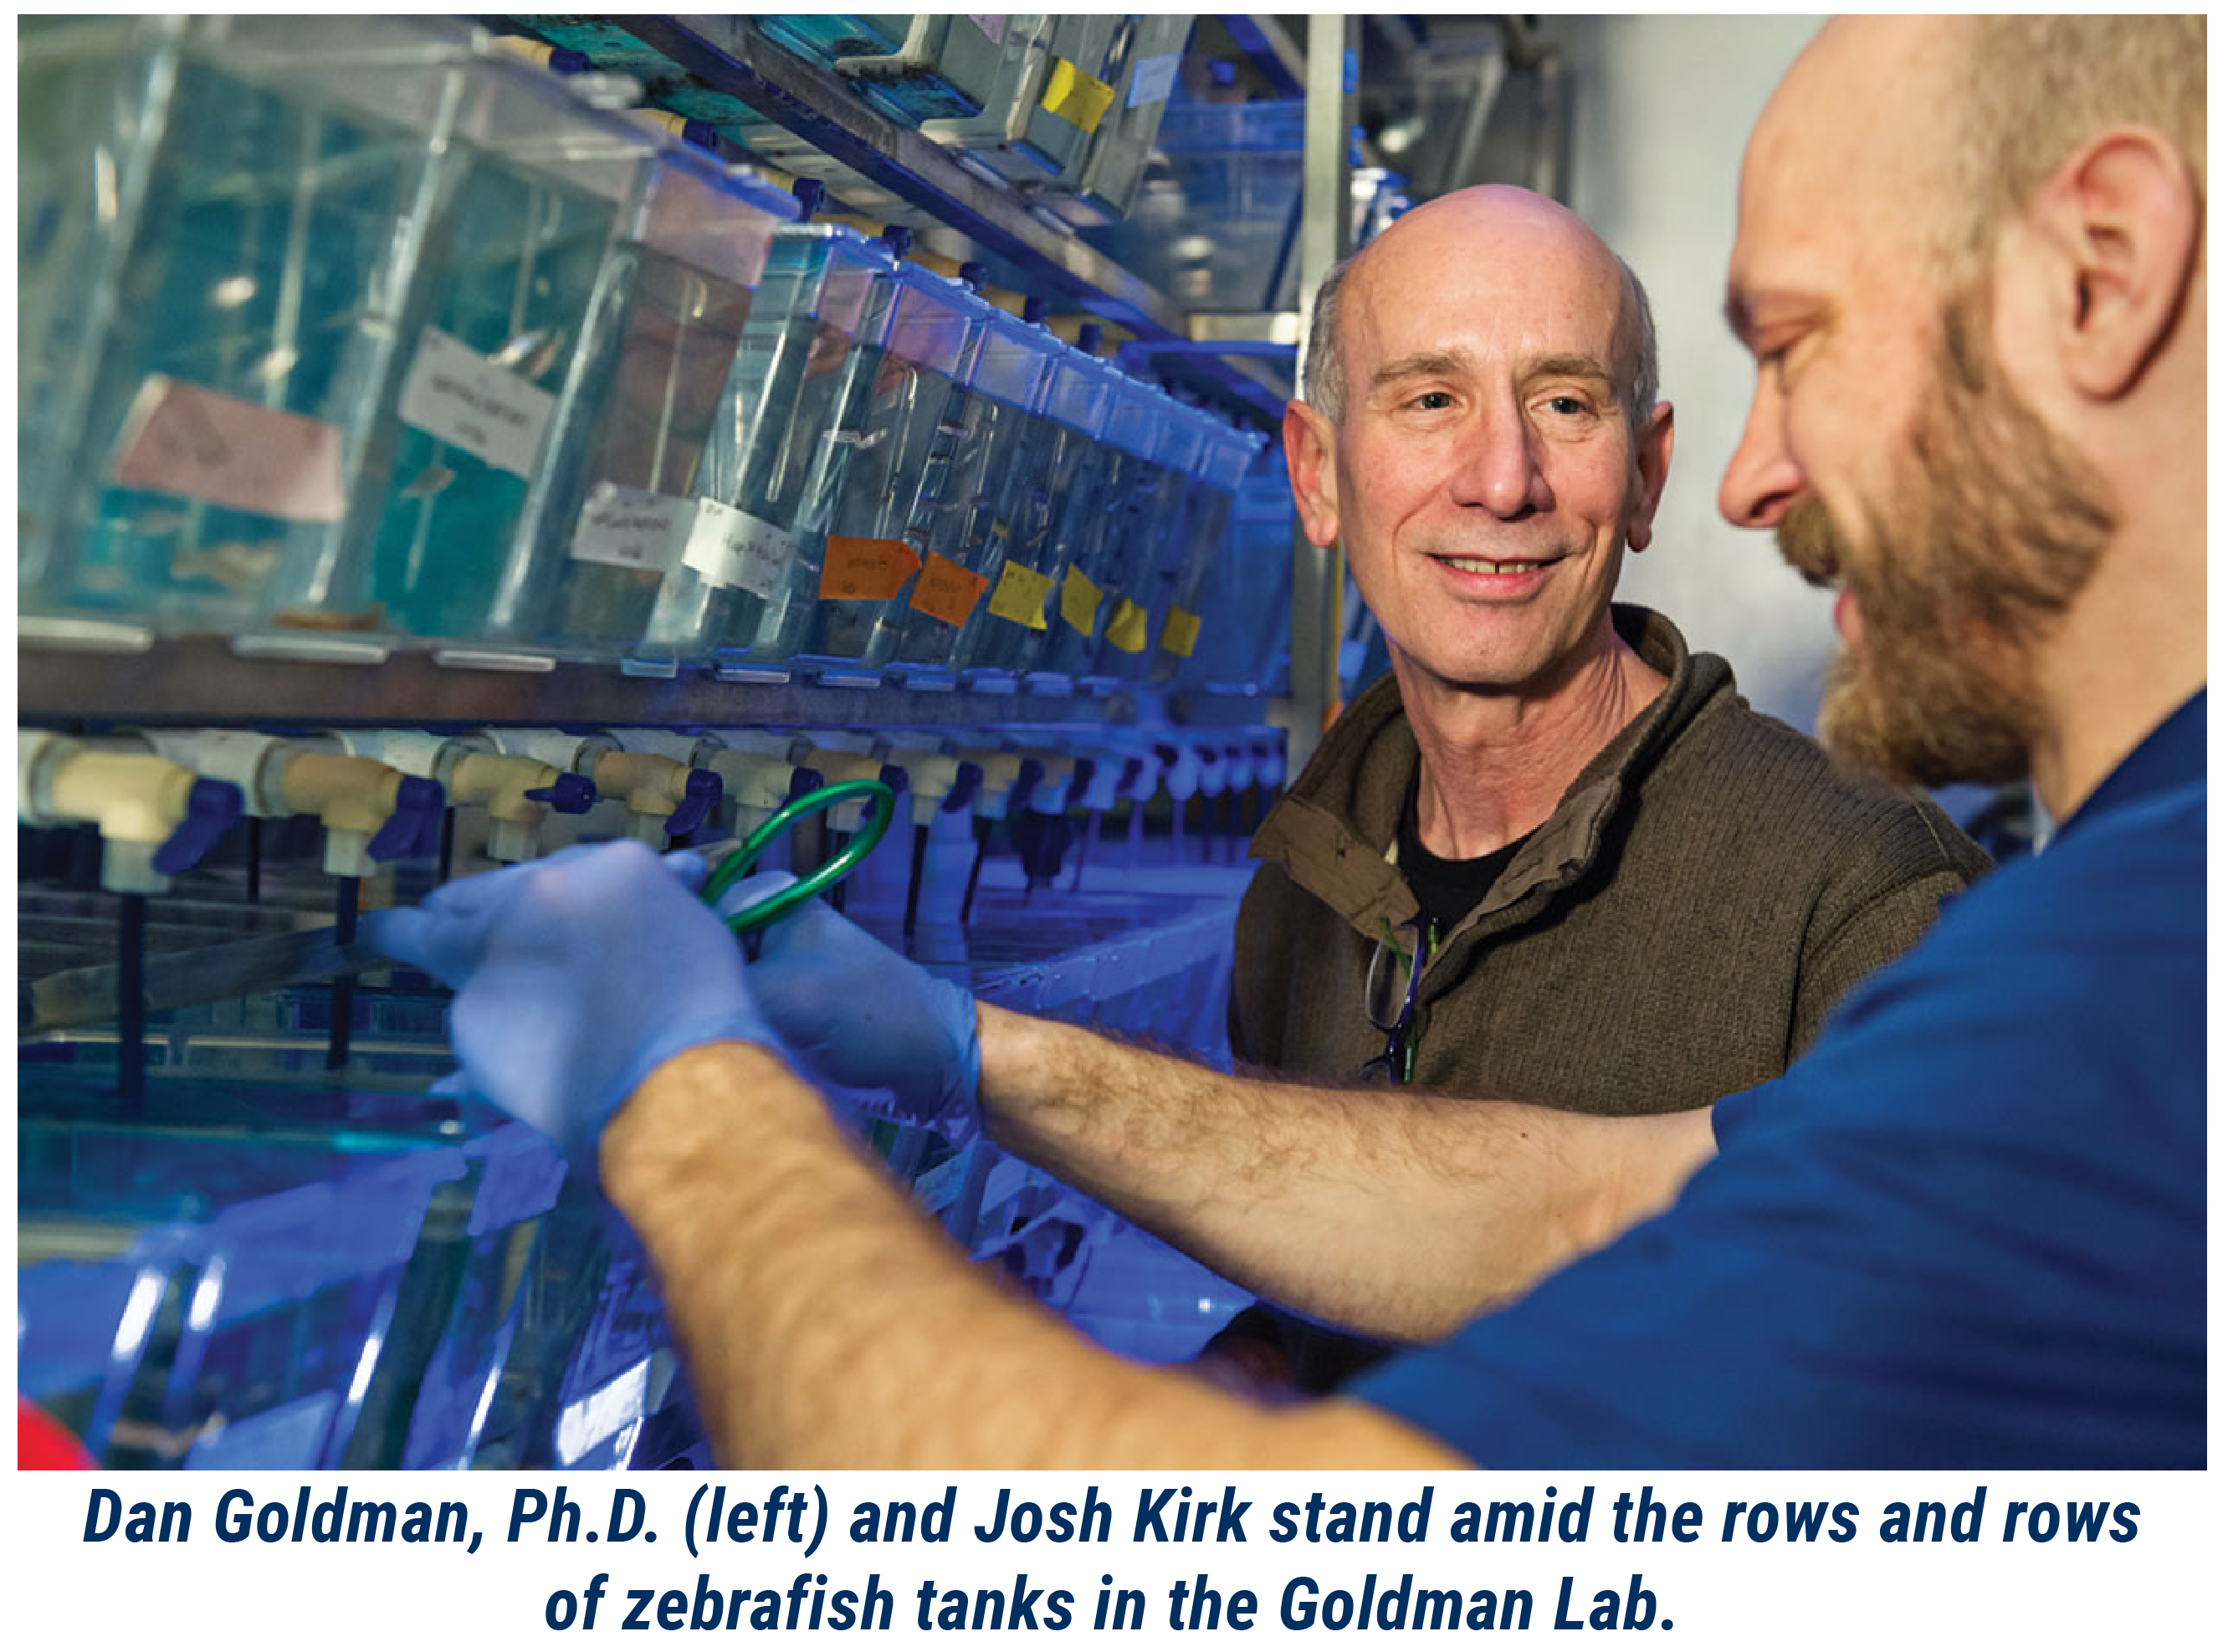 Dan Goldman, Ph.D. (left) and Josh Kirk stand amid the rows and rows of zebrafish tanks in the Goldman Lab.